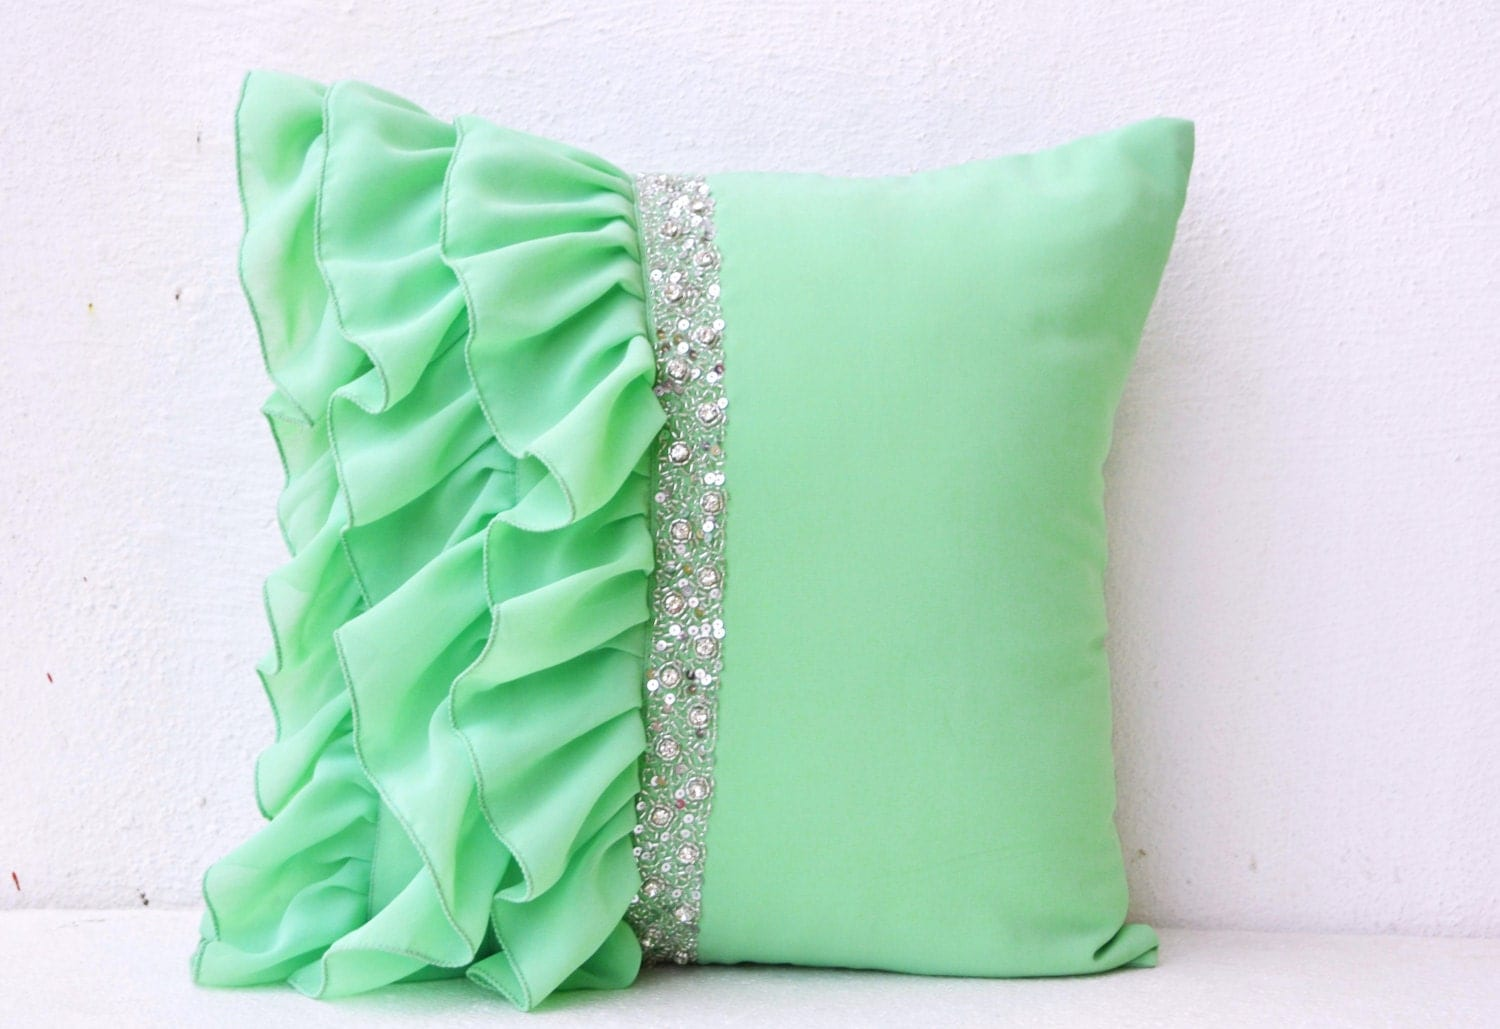 Mint green ruffled beaded throw pillows 16X16 Decorative